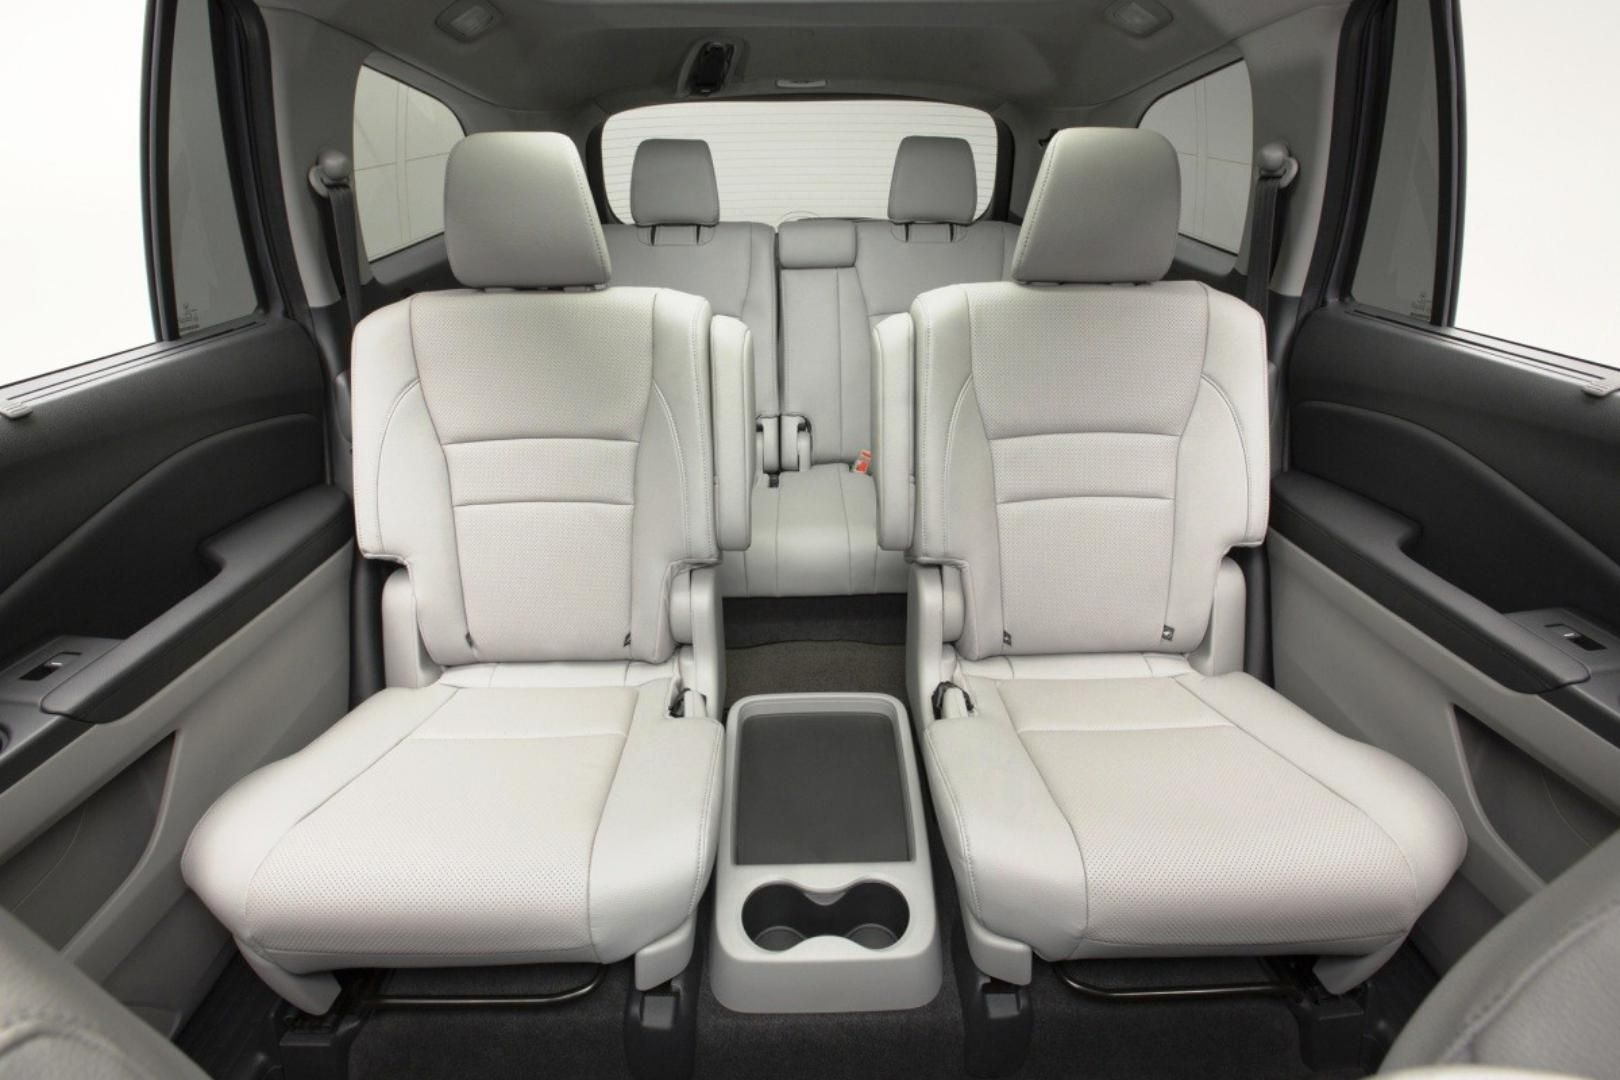 2017 honda pilot changes interior seats